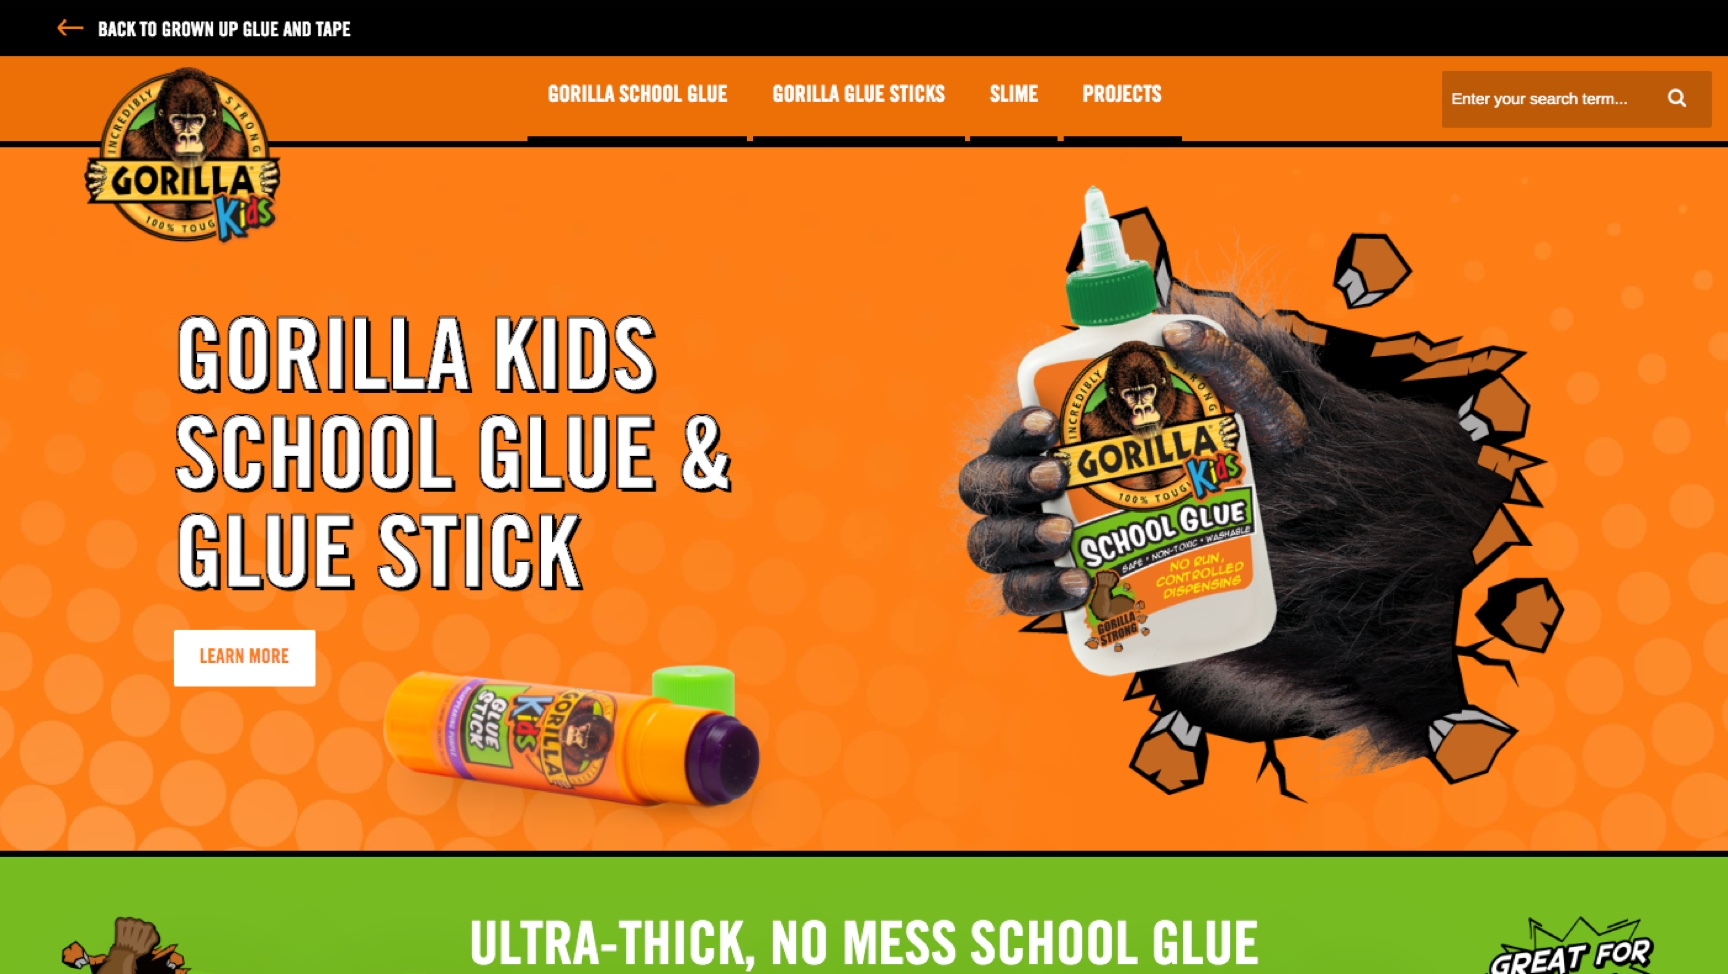 Image of Gorilla Glue Kids webpage.